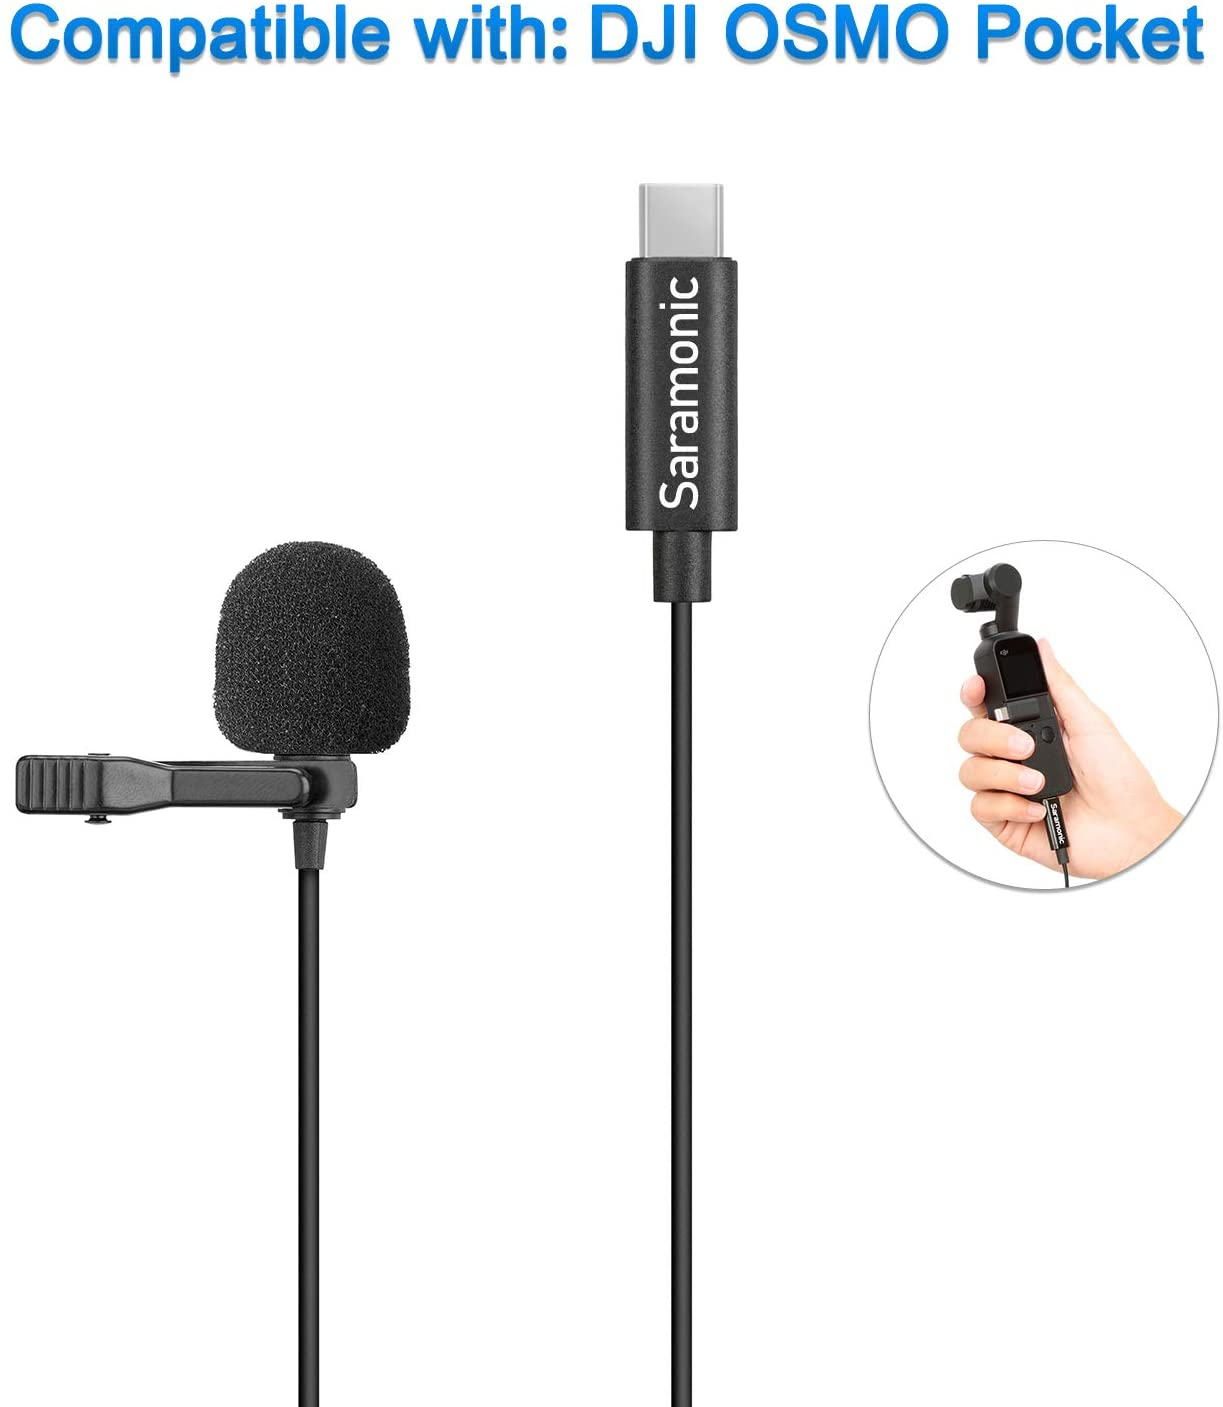 Saramonic LavMicro U3-OP Plug and Play Lavalier Microphone Digital Omnidirectional Clip-on Lapel Mic USB Type-C Plug Compatible with DJI OSMO Pocket Camera for Vlog Film Video Recording